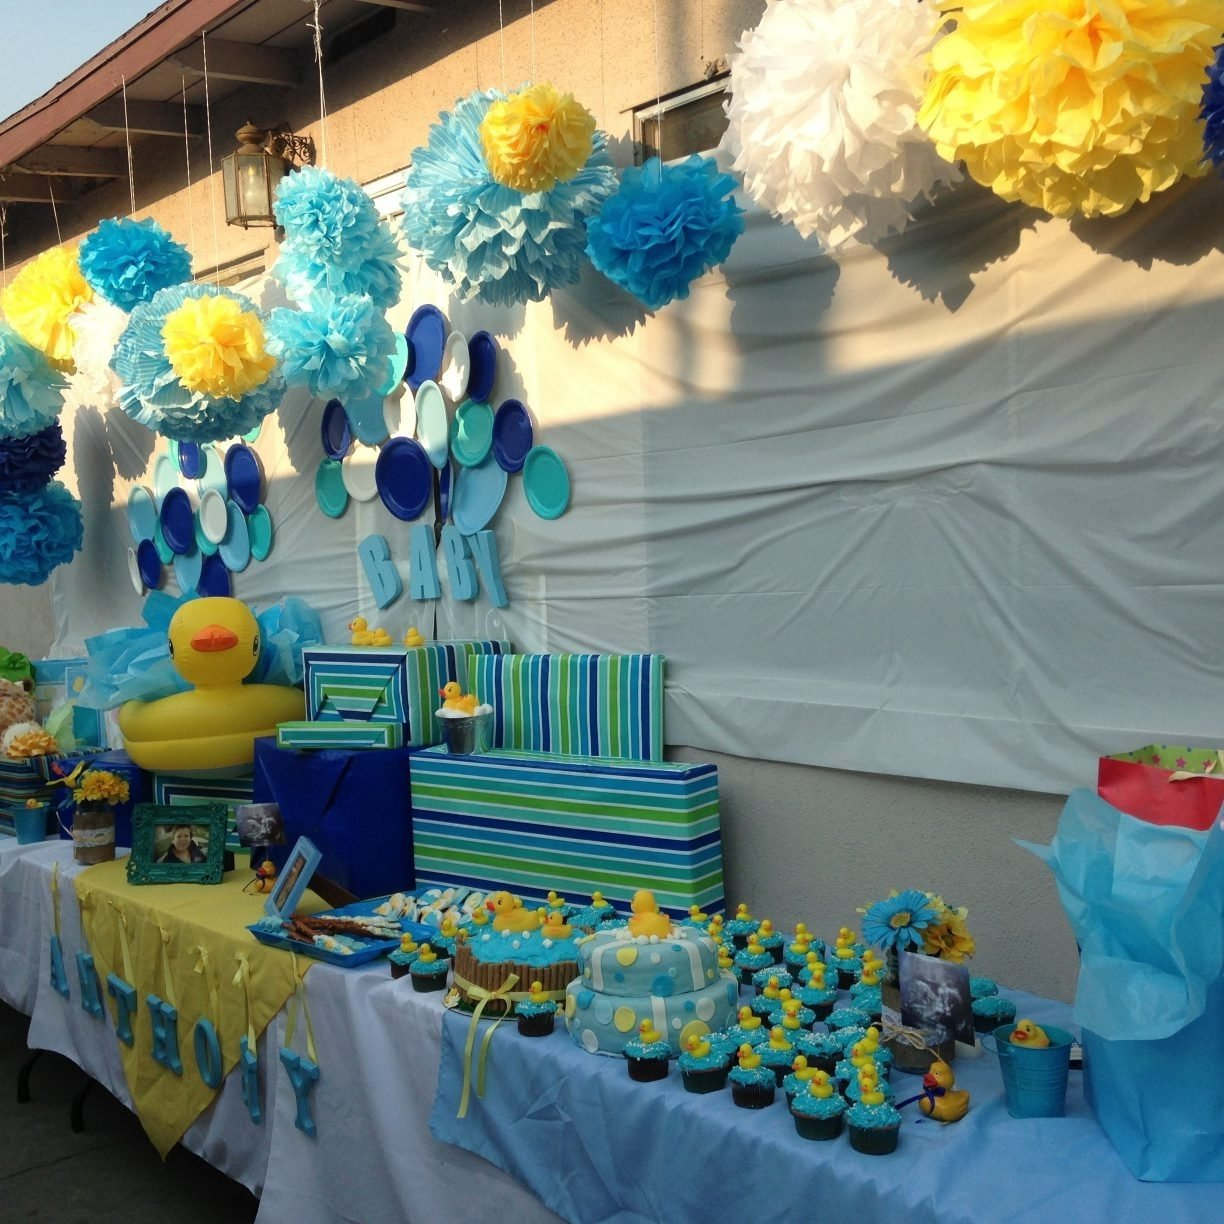 10 Stylish Rubber Ducky Baby Shower Ideas ideas maxresdefault wonderful rubber duck baby shower ducky cake